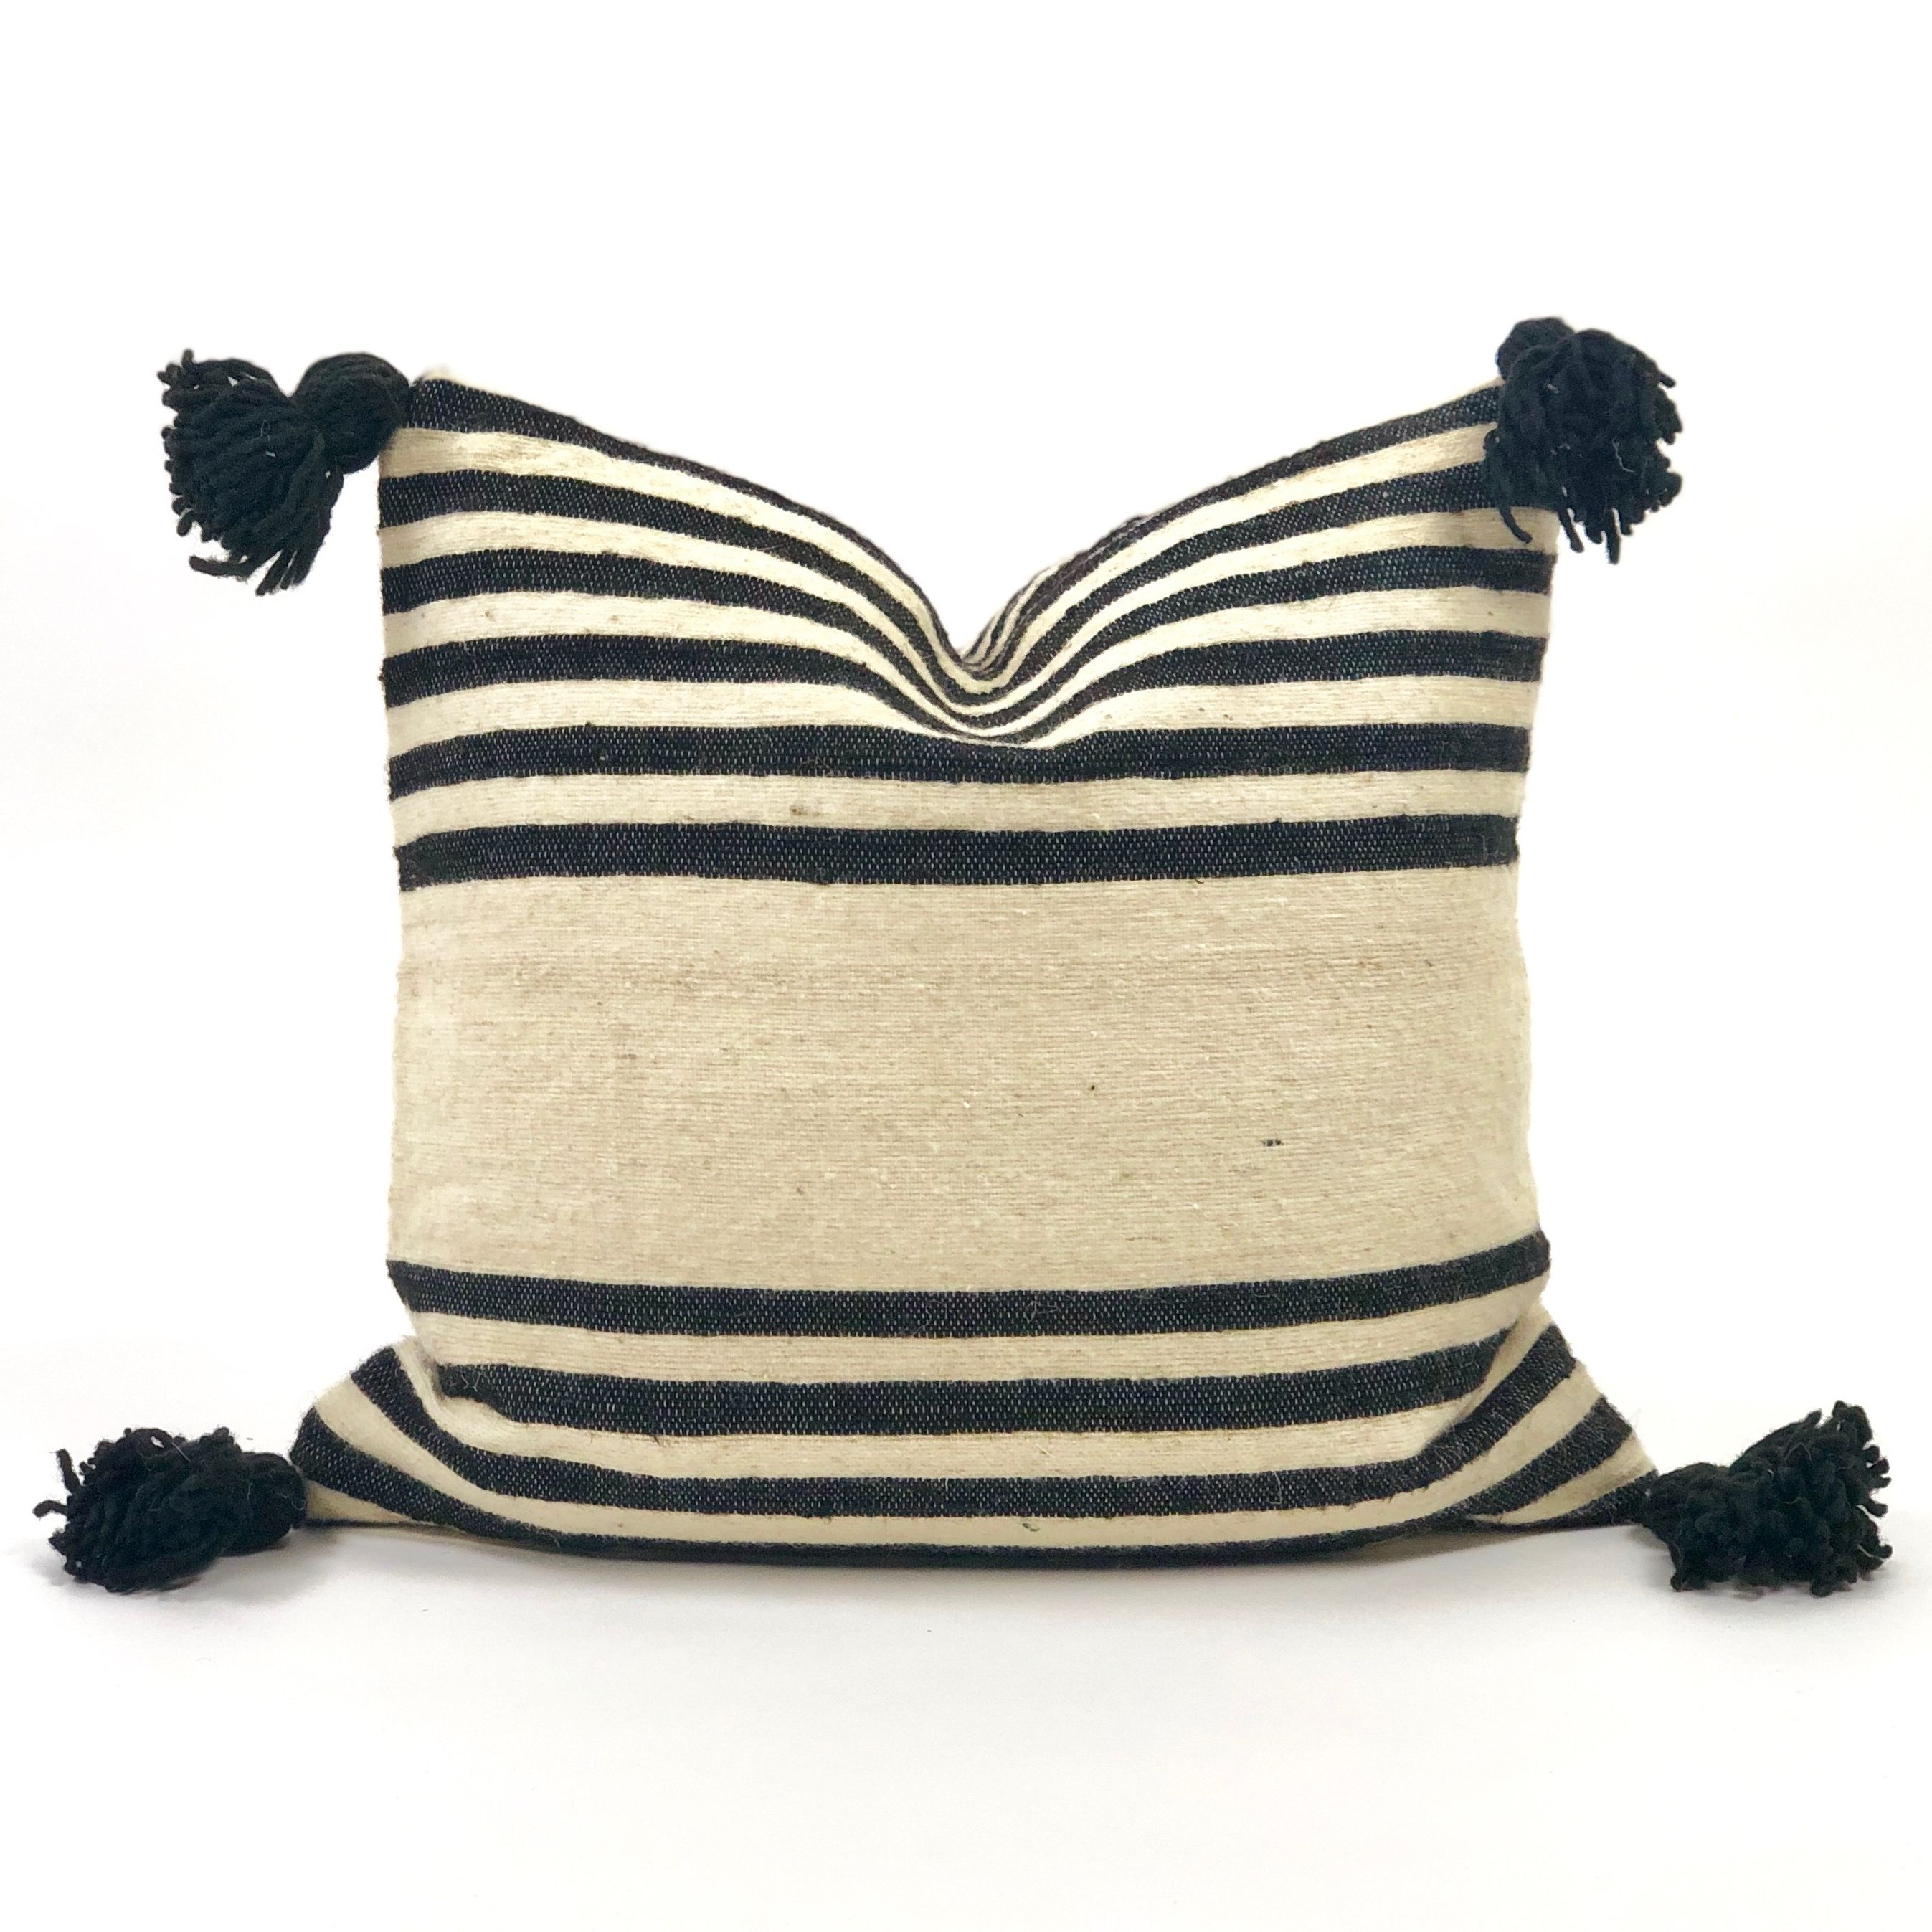 This Textural Pillow Is Hand Crafted By Weavers In Morocco Using Natural Dyes Distinctive Bold Black Stripes Throw Pillows Pillows Throw Pillows Living Room